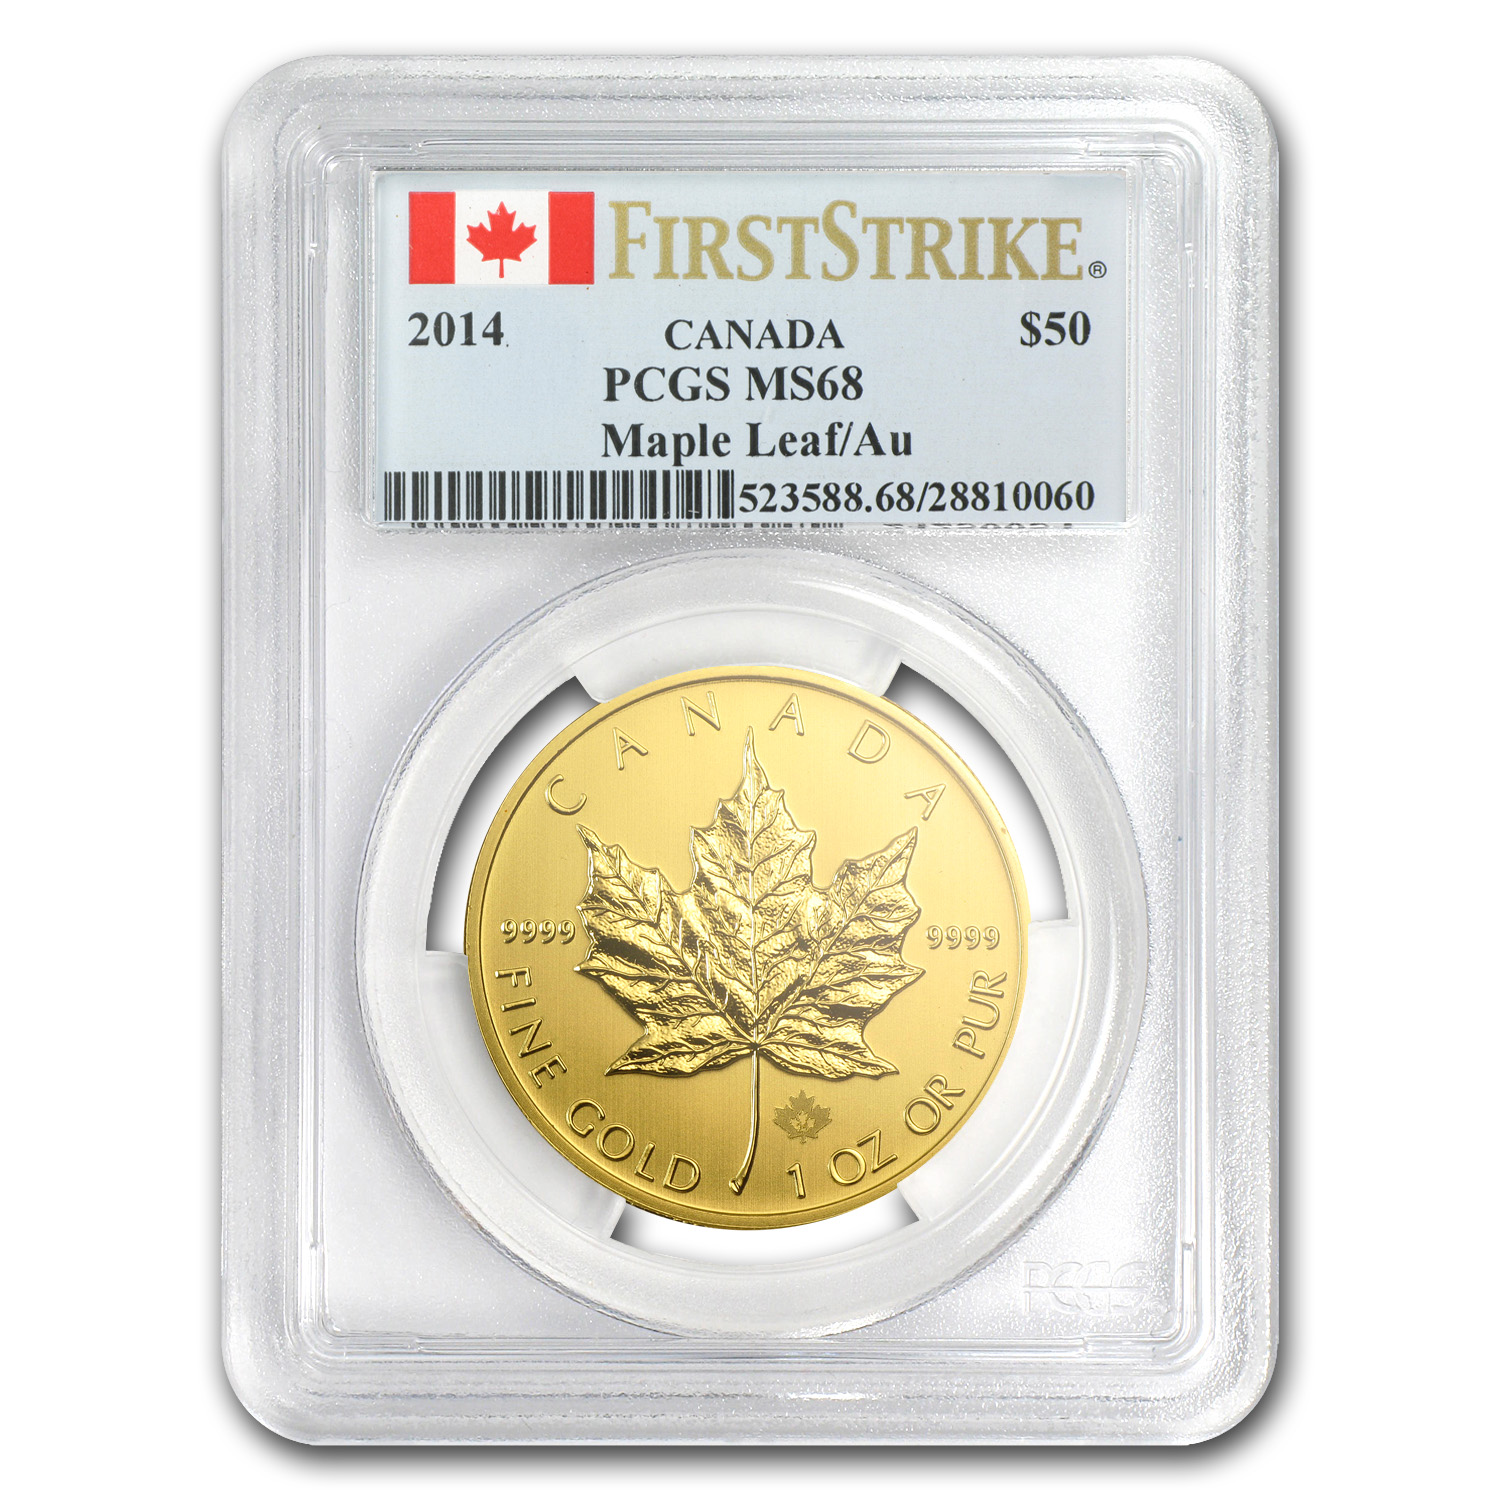 2014 Canada 1 oz Gold Maple Leaf MS-68 PCGS (First Strike)